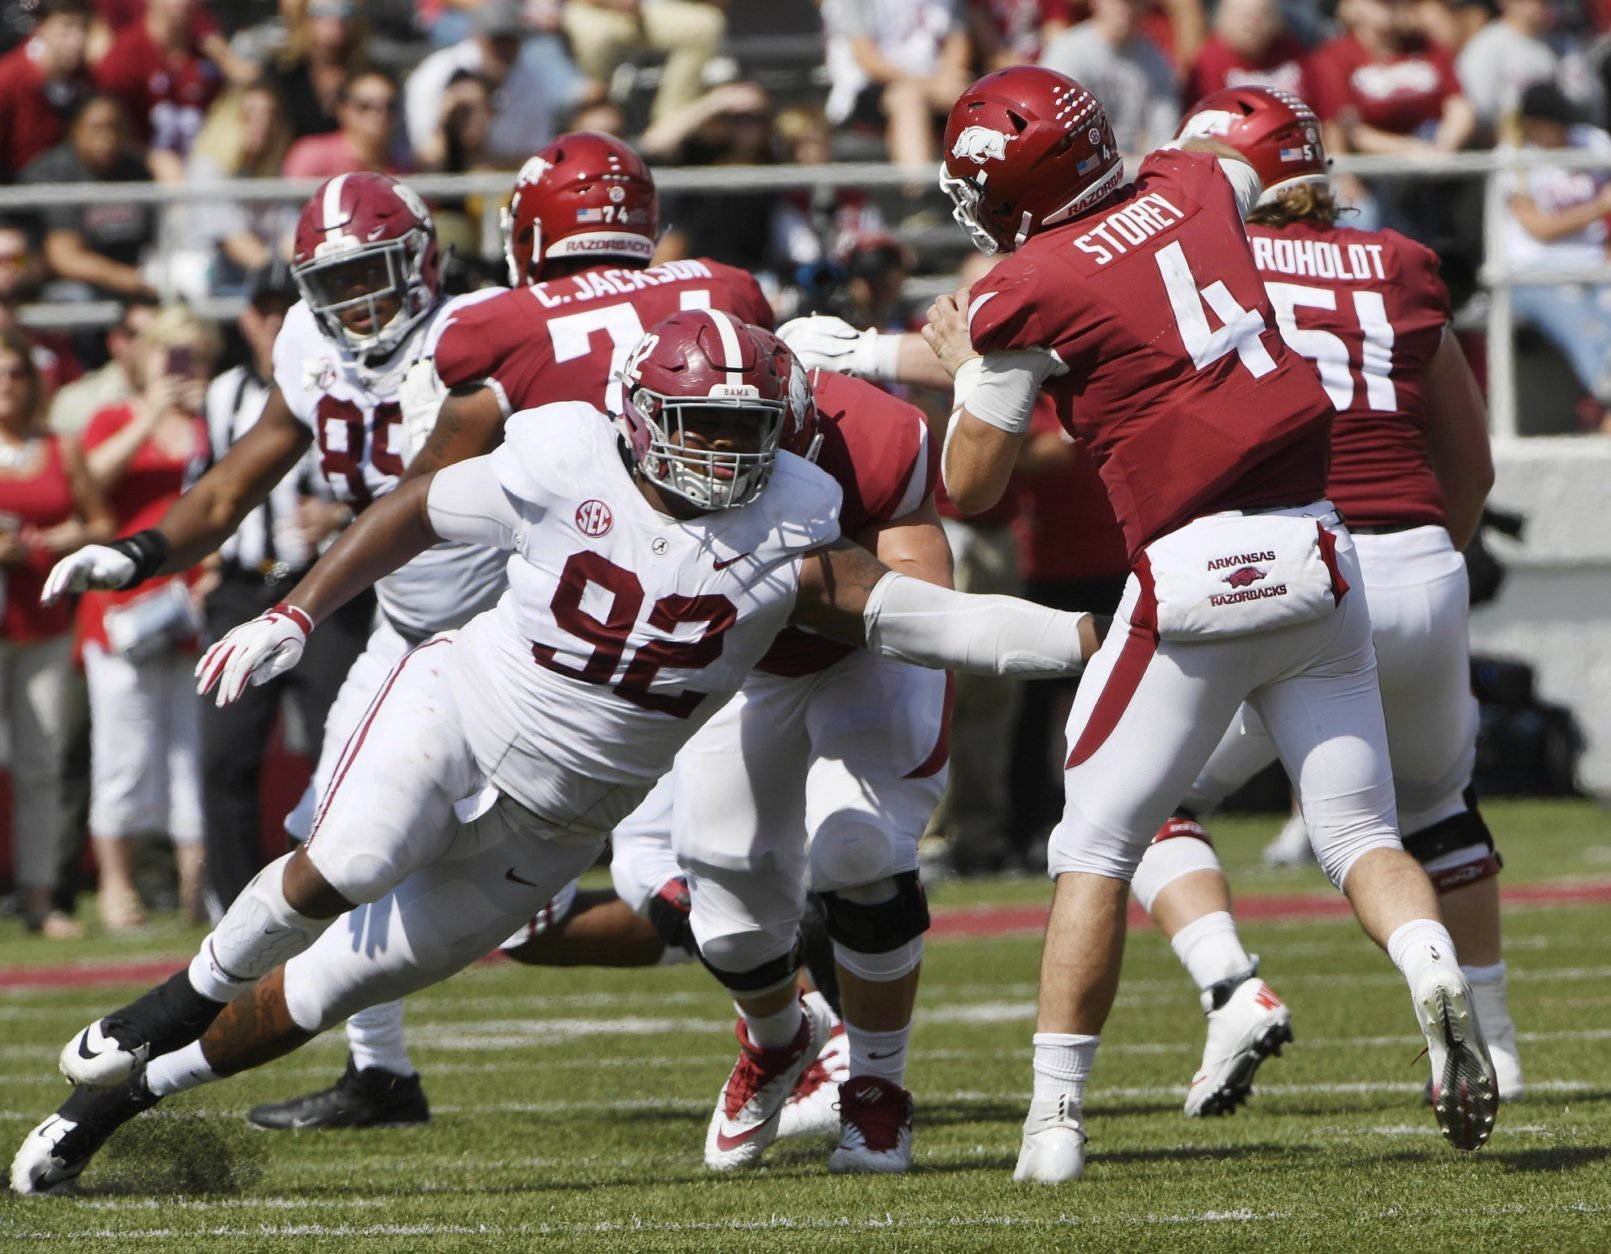 "FILE - In this Oct. 6, 2018, file photo, Alabama defensive lineman Quinnen Williams puts the pressure on Arkansas quarterback Ty Storey in the second half of an NCAA college football game, in Fayetteville, Ark. The guys who have to block Quinnen Williams in practice aren't the least bit surprised by his success on Alabama's defensive line. Williams has emerged as a dominant force for the top-ranked Crimson Tide at nose guard, doing in games what he has often done in practice. ""I think we're honestly a little relieved as an (offensive) line that we're like, 'OK, no one else can block him either,'"" Alabama left tackle Jonah Williams said. (AP Photo/Michael Woods, File)"